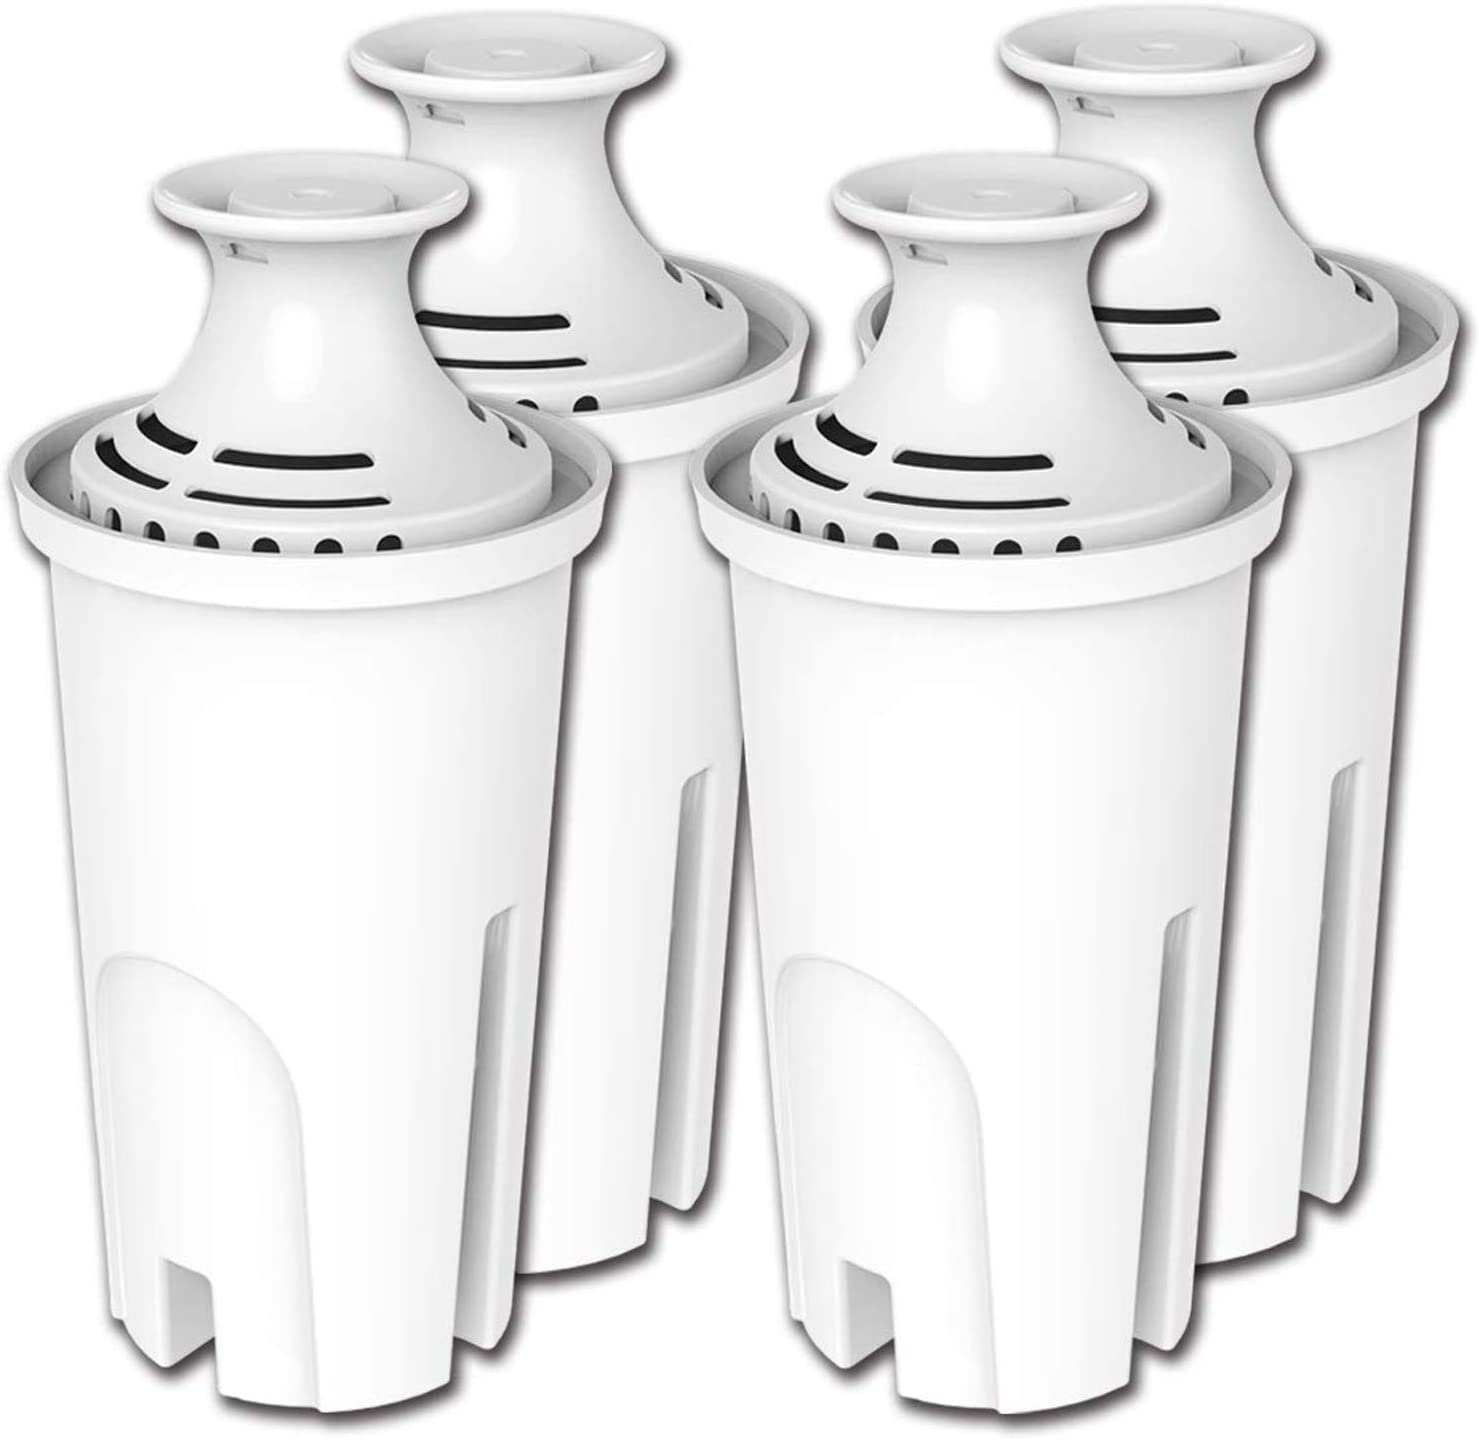 PUREUP 6 Pack Standard Water Filter Compatible with Brita Pitchers, Sispensers, Premium Pitcher Replacement Filters